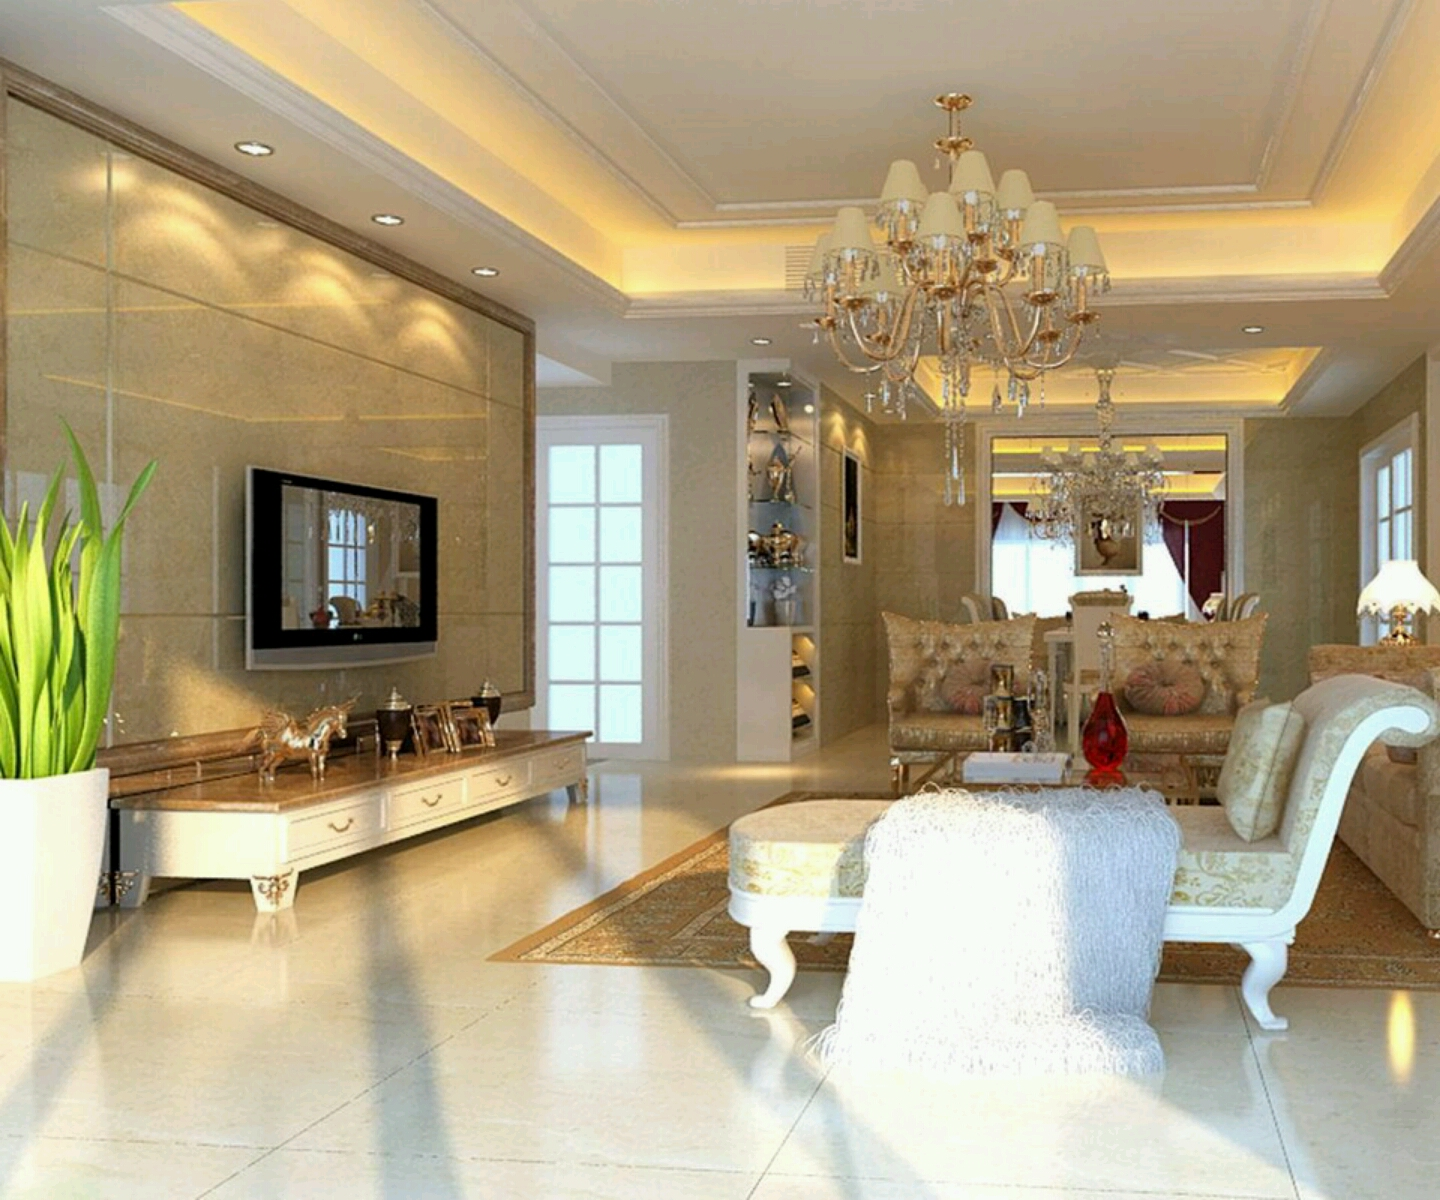 Home Interior Design Decor: Luxury Home Interior